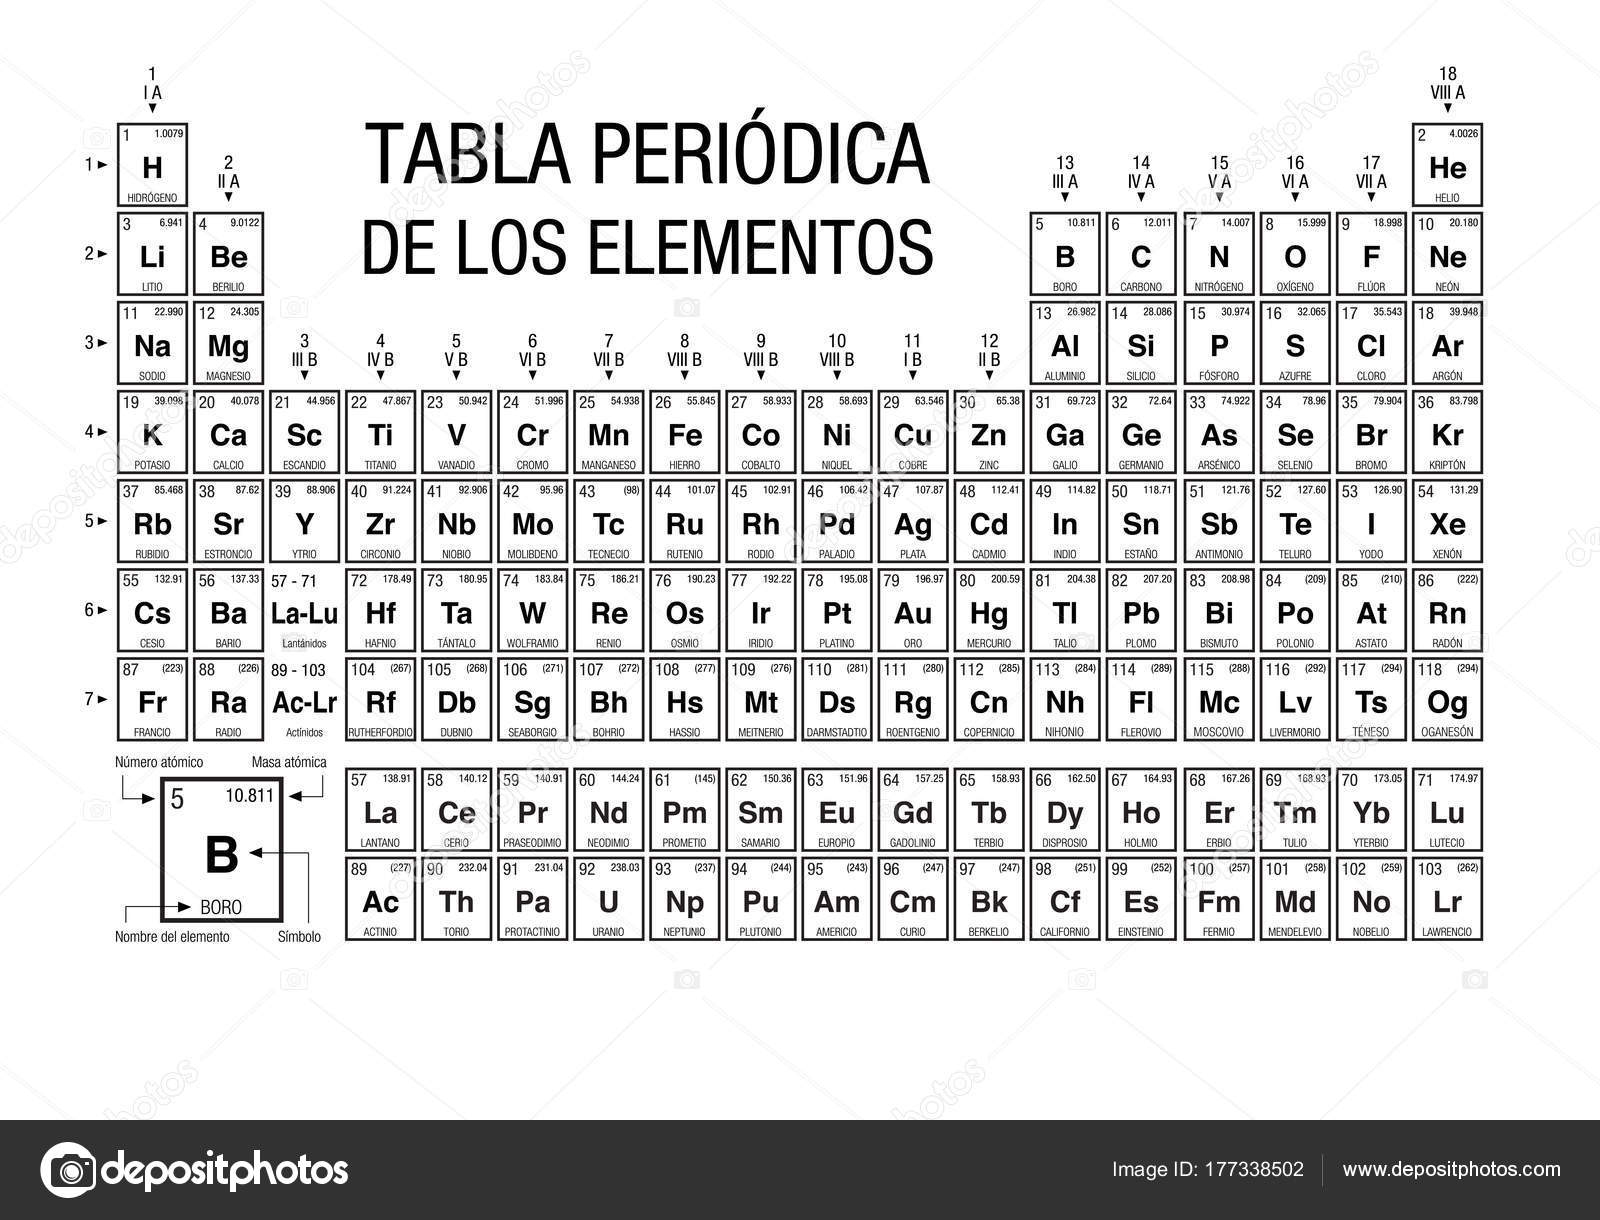 Tabla periodica los elementos periodic table elements spanish tabla periodica los elementos periodic table elements spanish language black stock vector urtaz Gallery